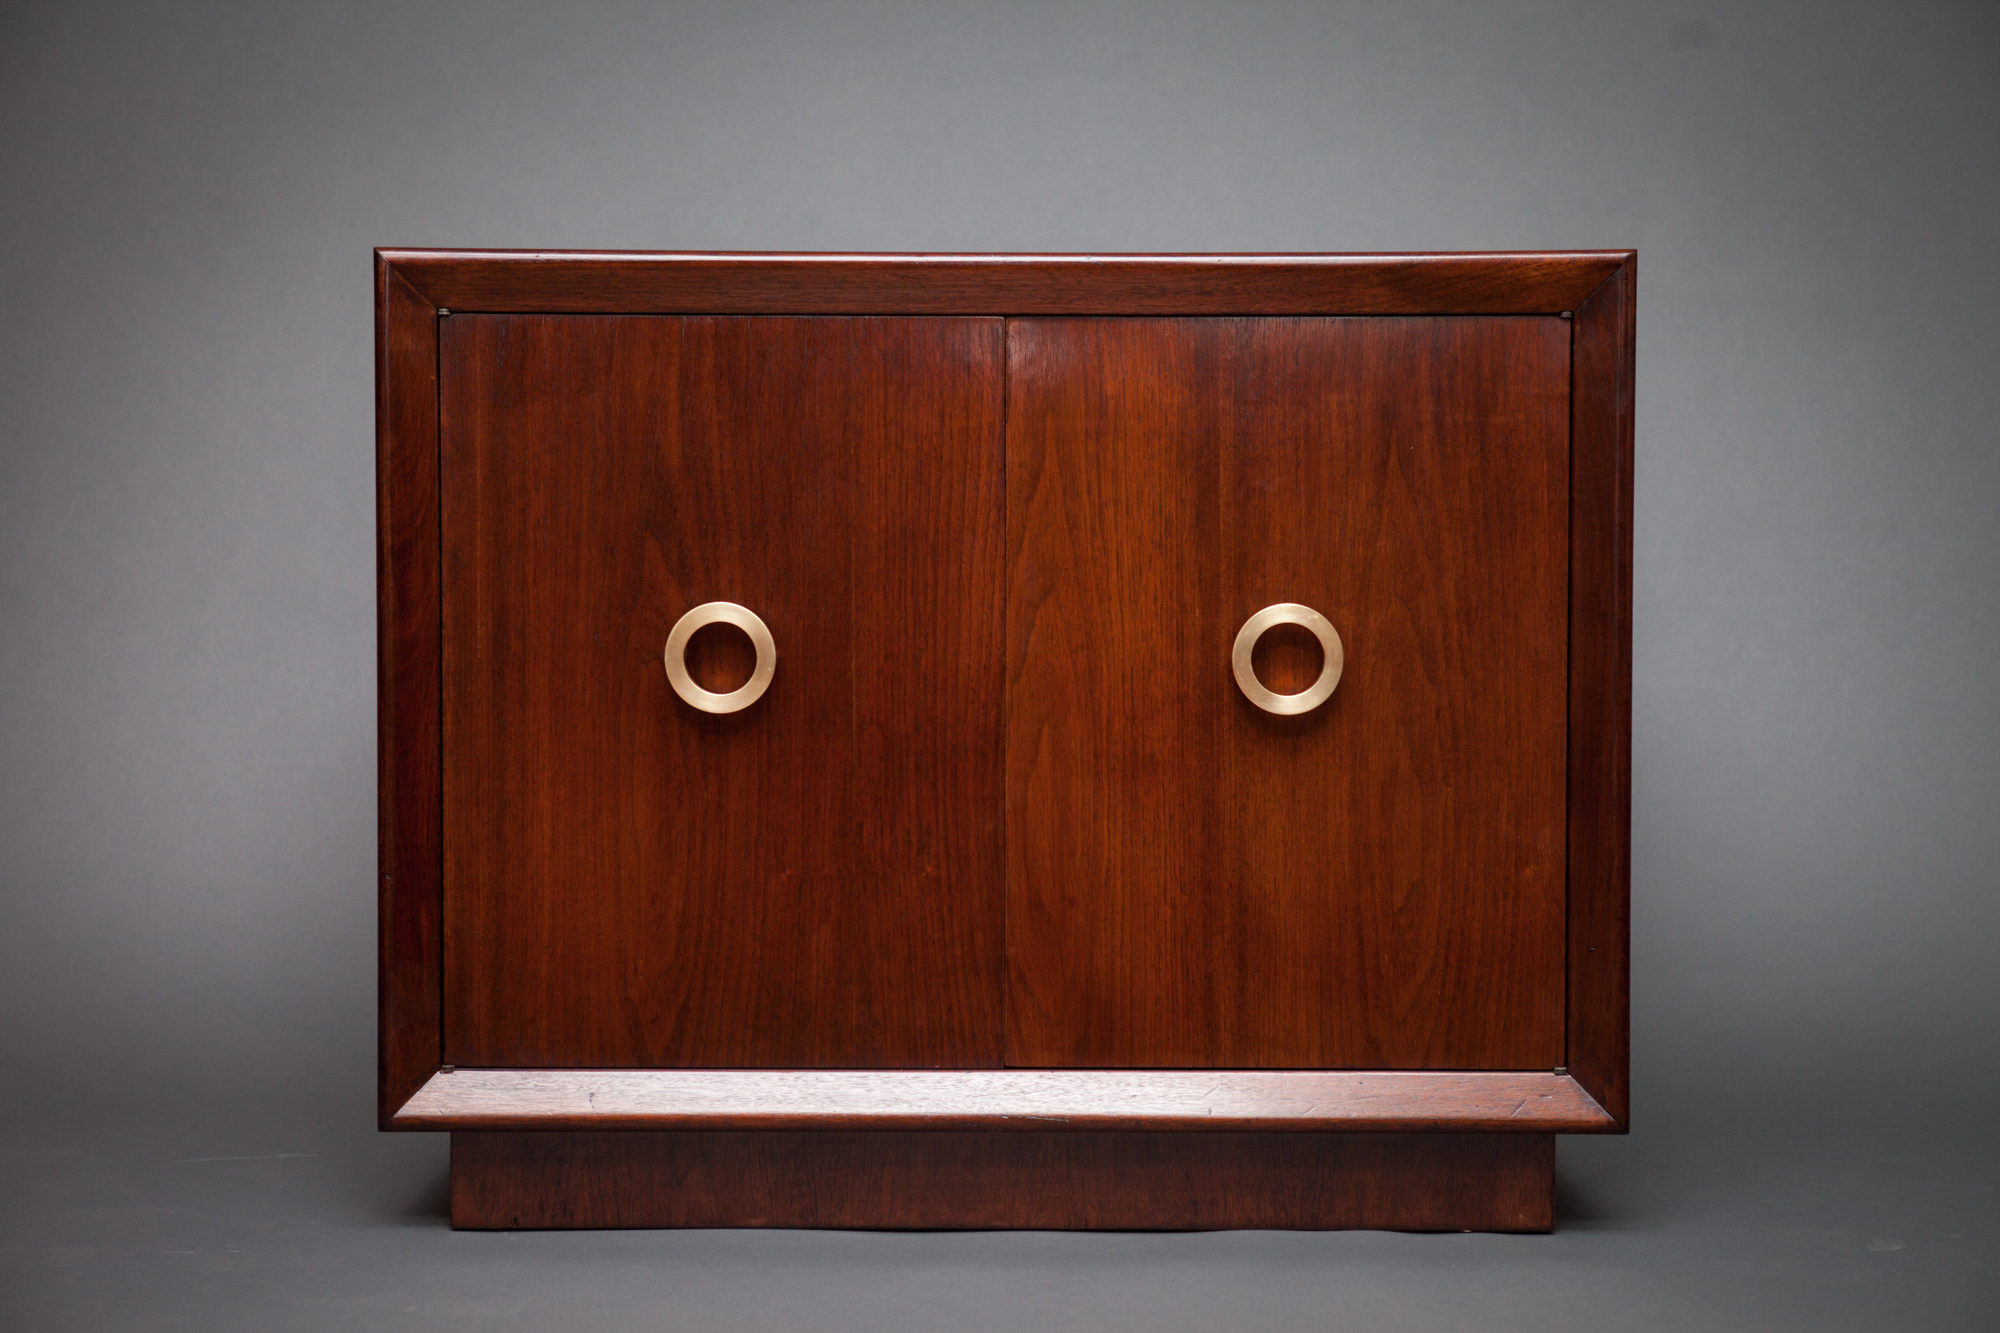 Pair of American Art Modern Cabinets